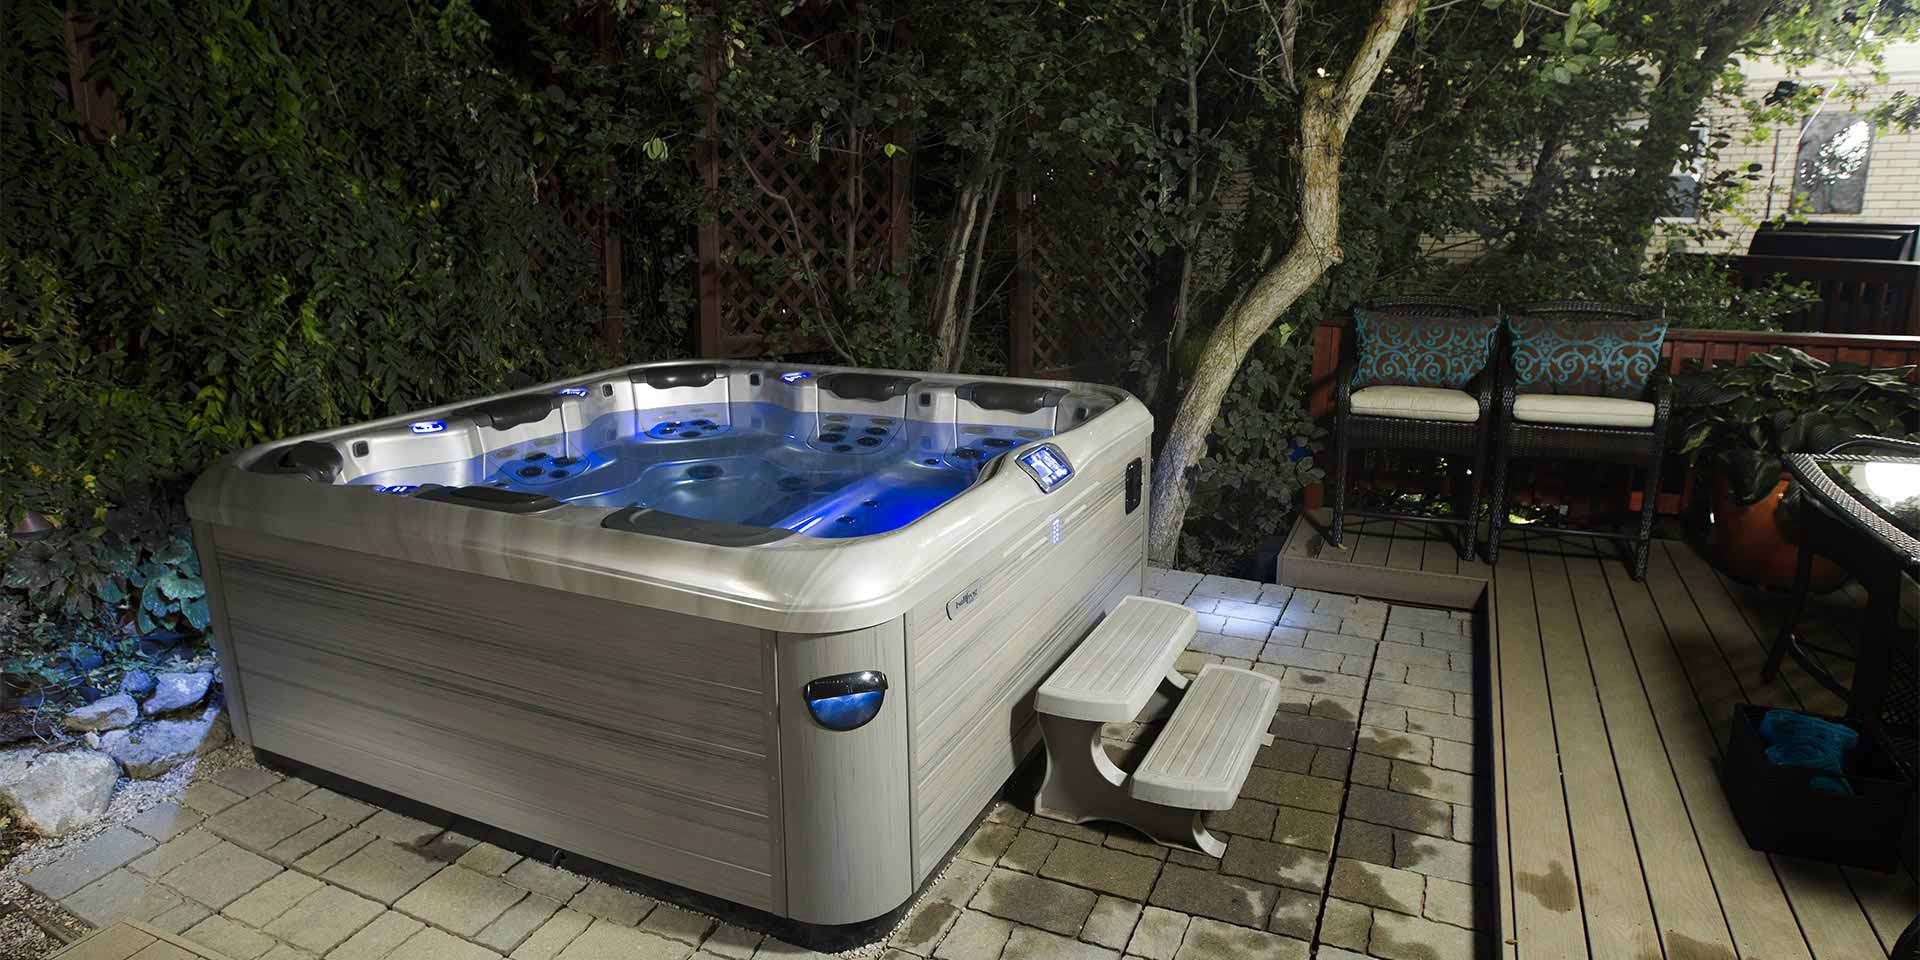 Jacuzzi Pool Covers Salem Portland Pools Fireplaces Patio Furniture Hot Tubs